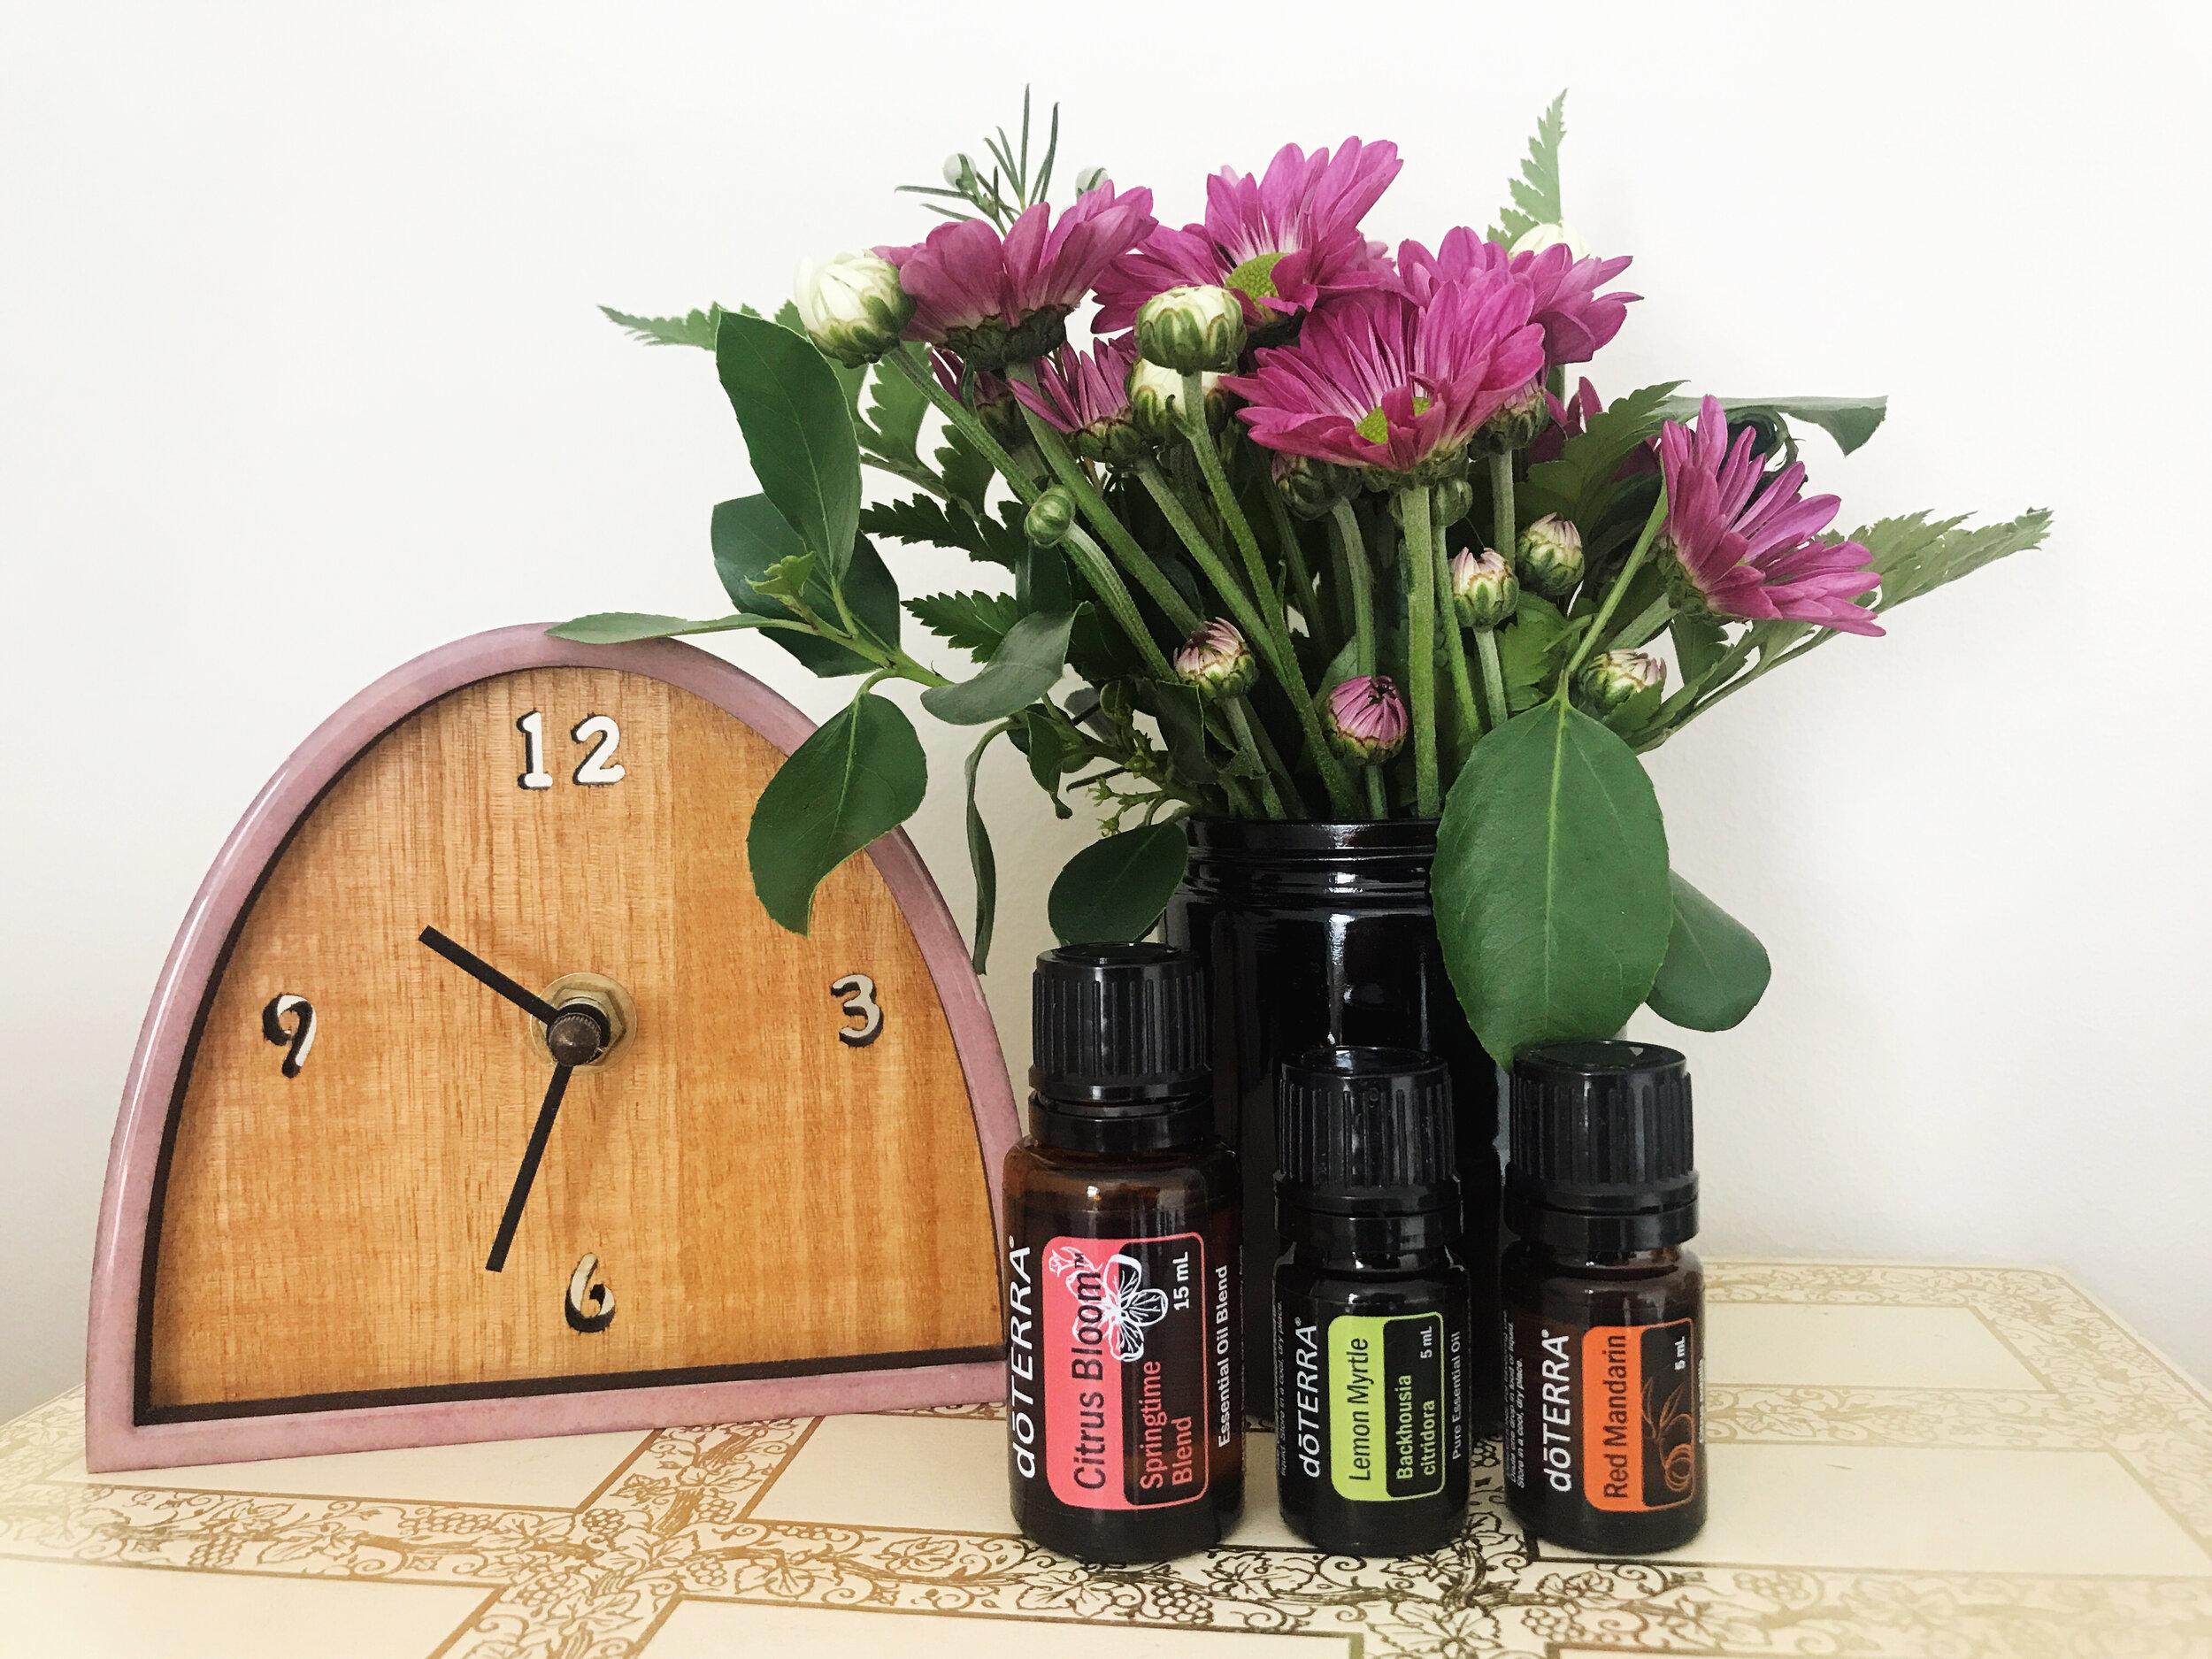 Essential Oils - Receive the three pictured limited edition oils free with your purchase before the 15th October.